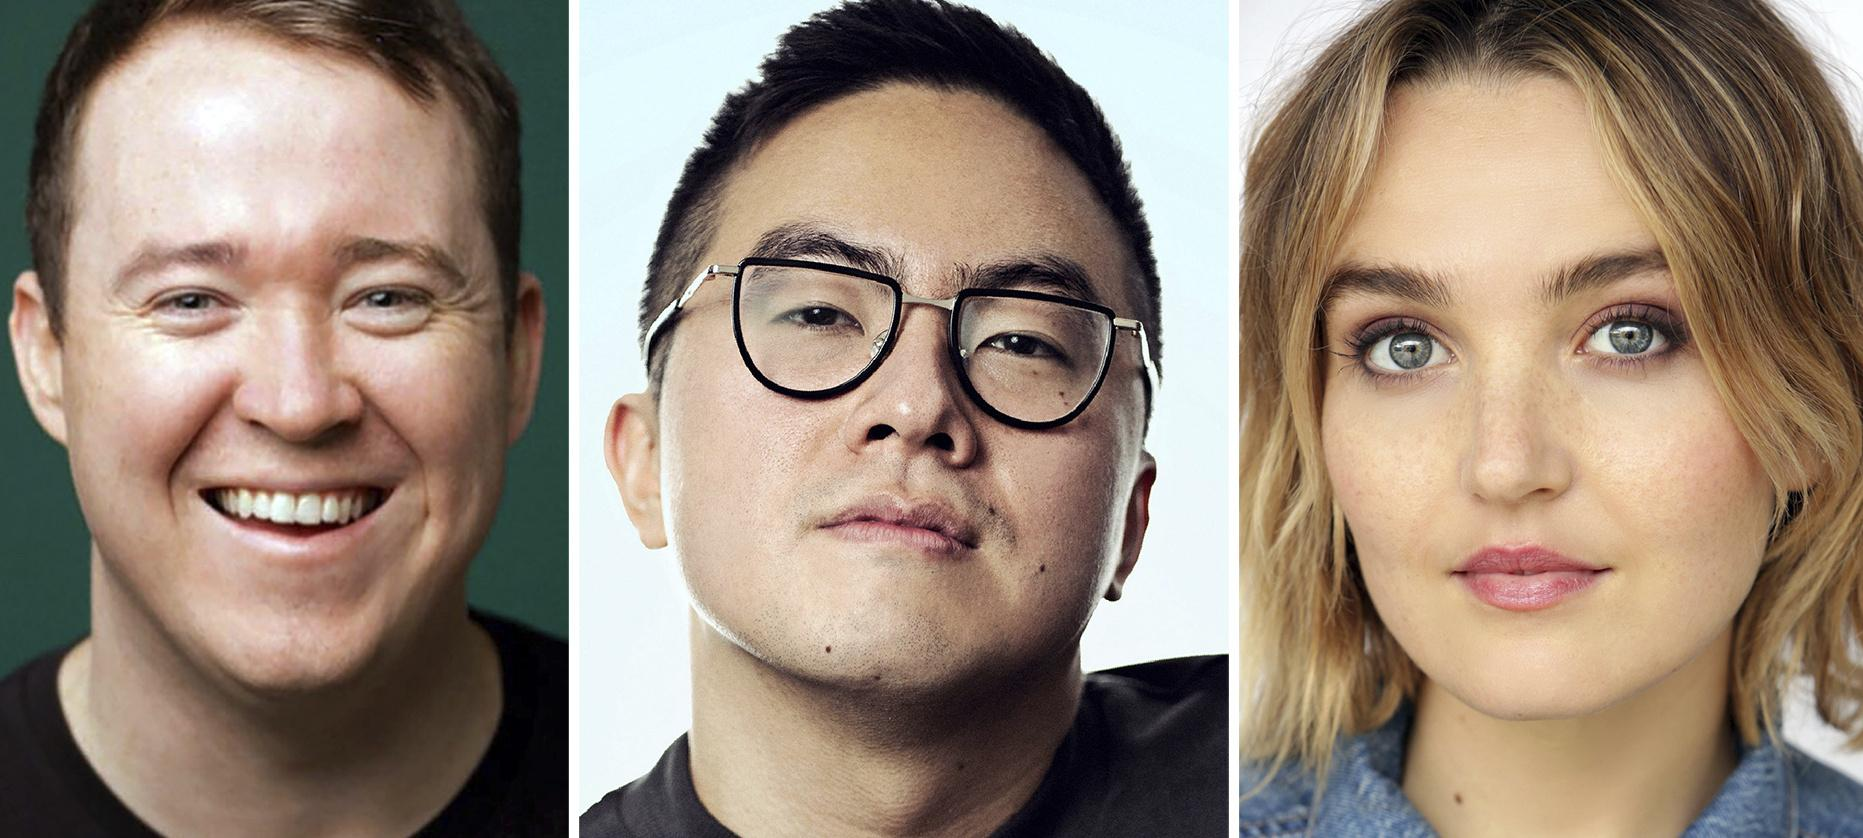 SNL adds first Asian cast member while another is under fire over anti-Asian slur